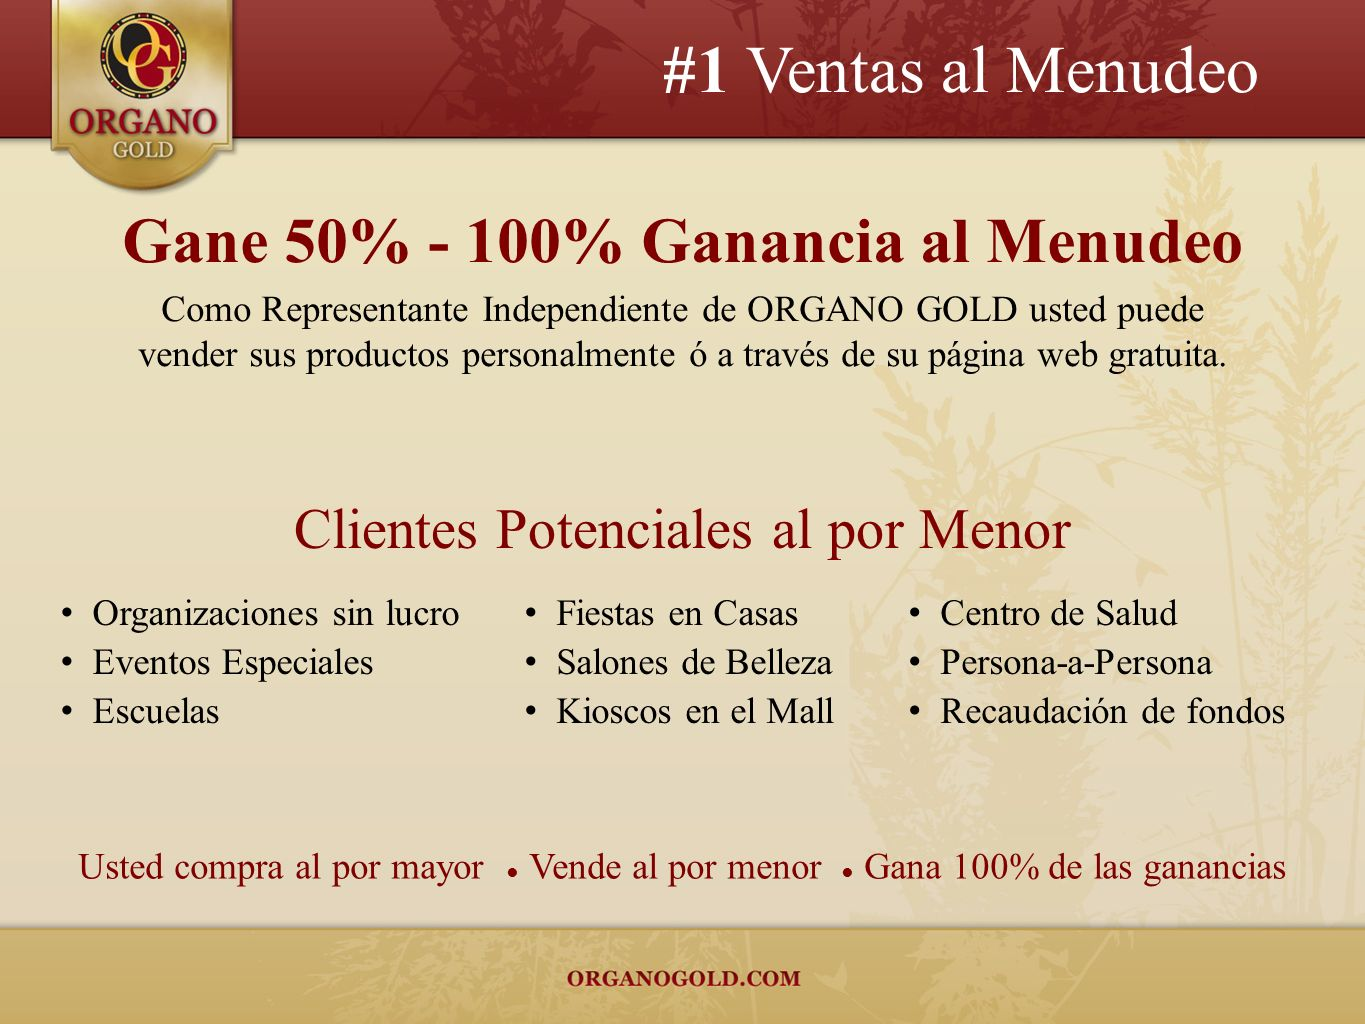 Gane 50% - 100% Ganancia al Menudeo